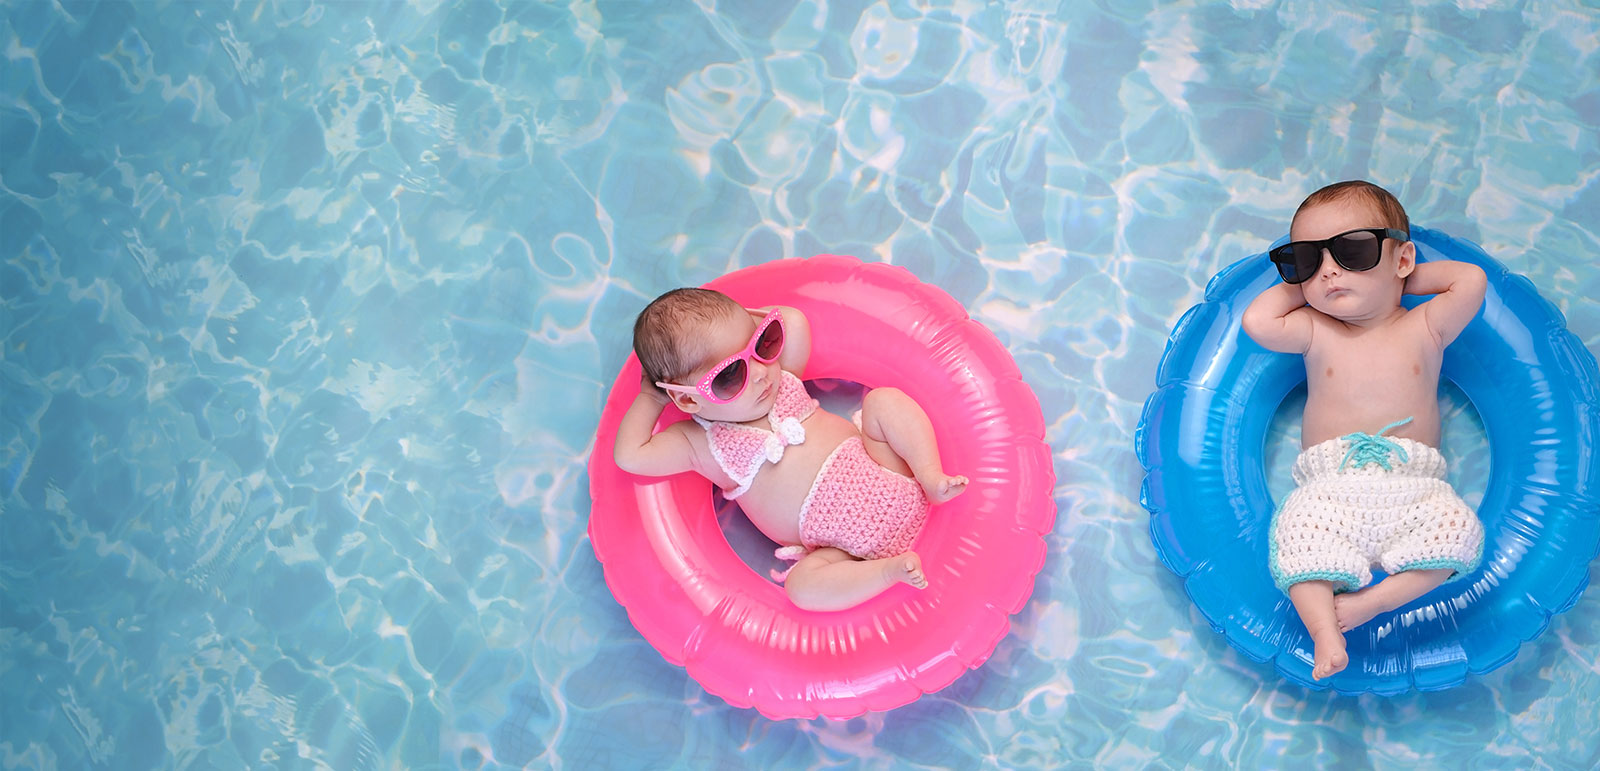 Babies in a pool